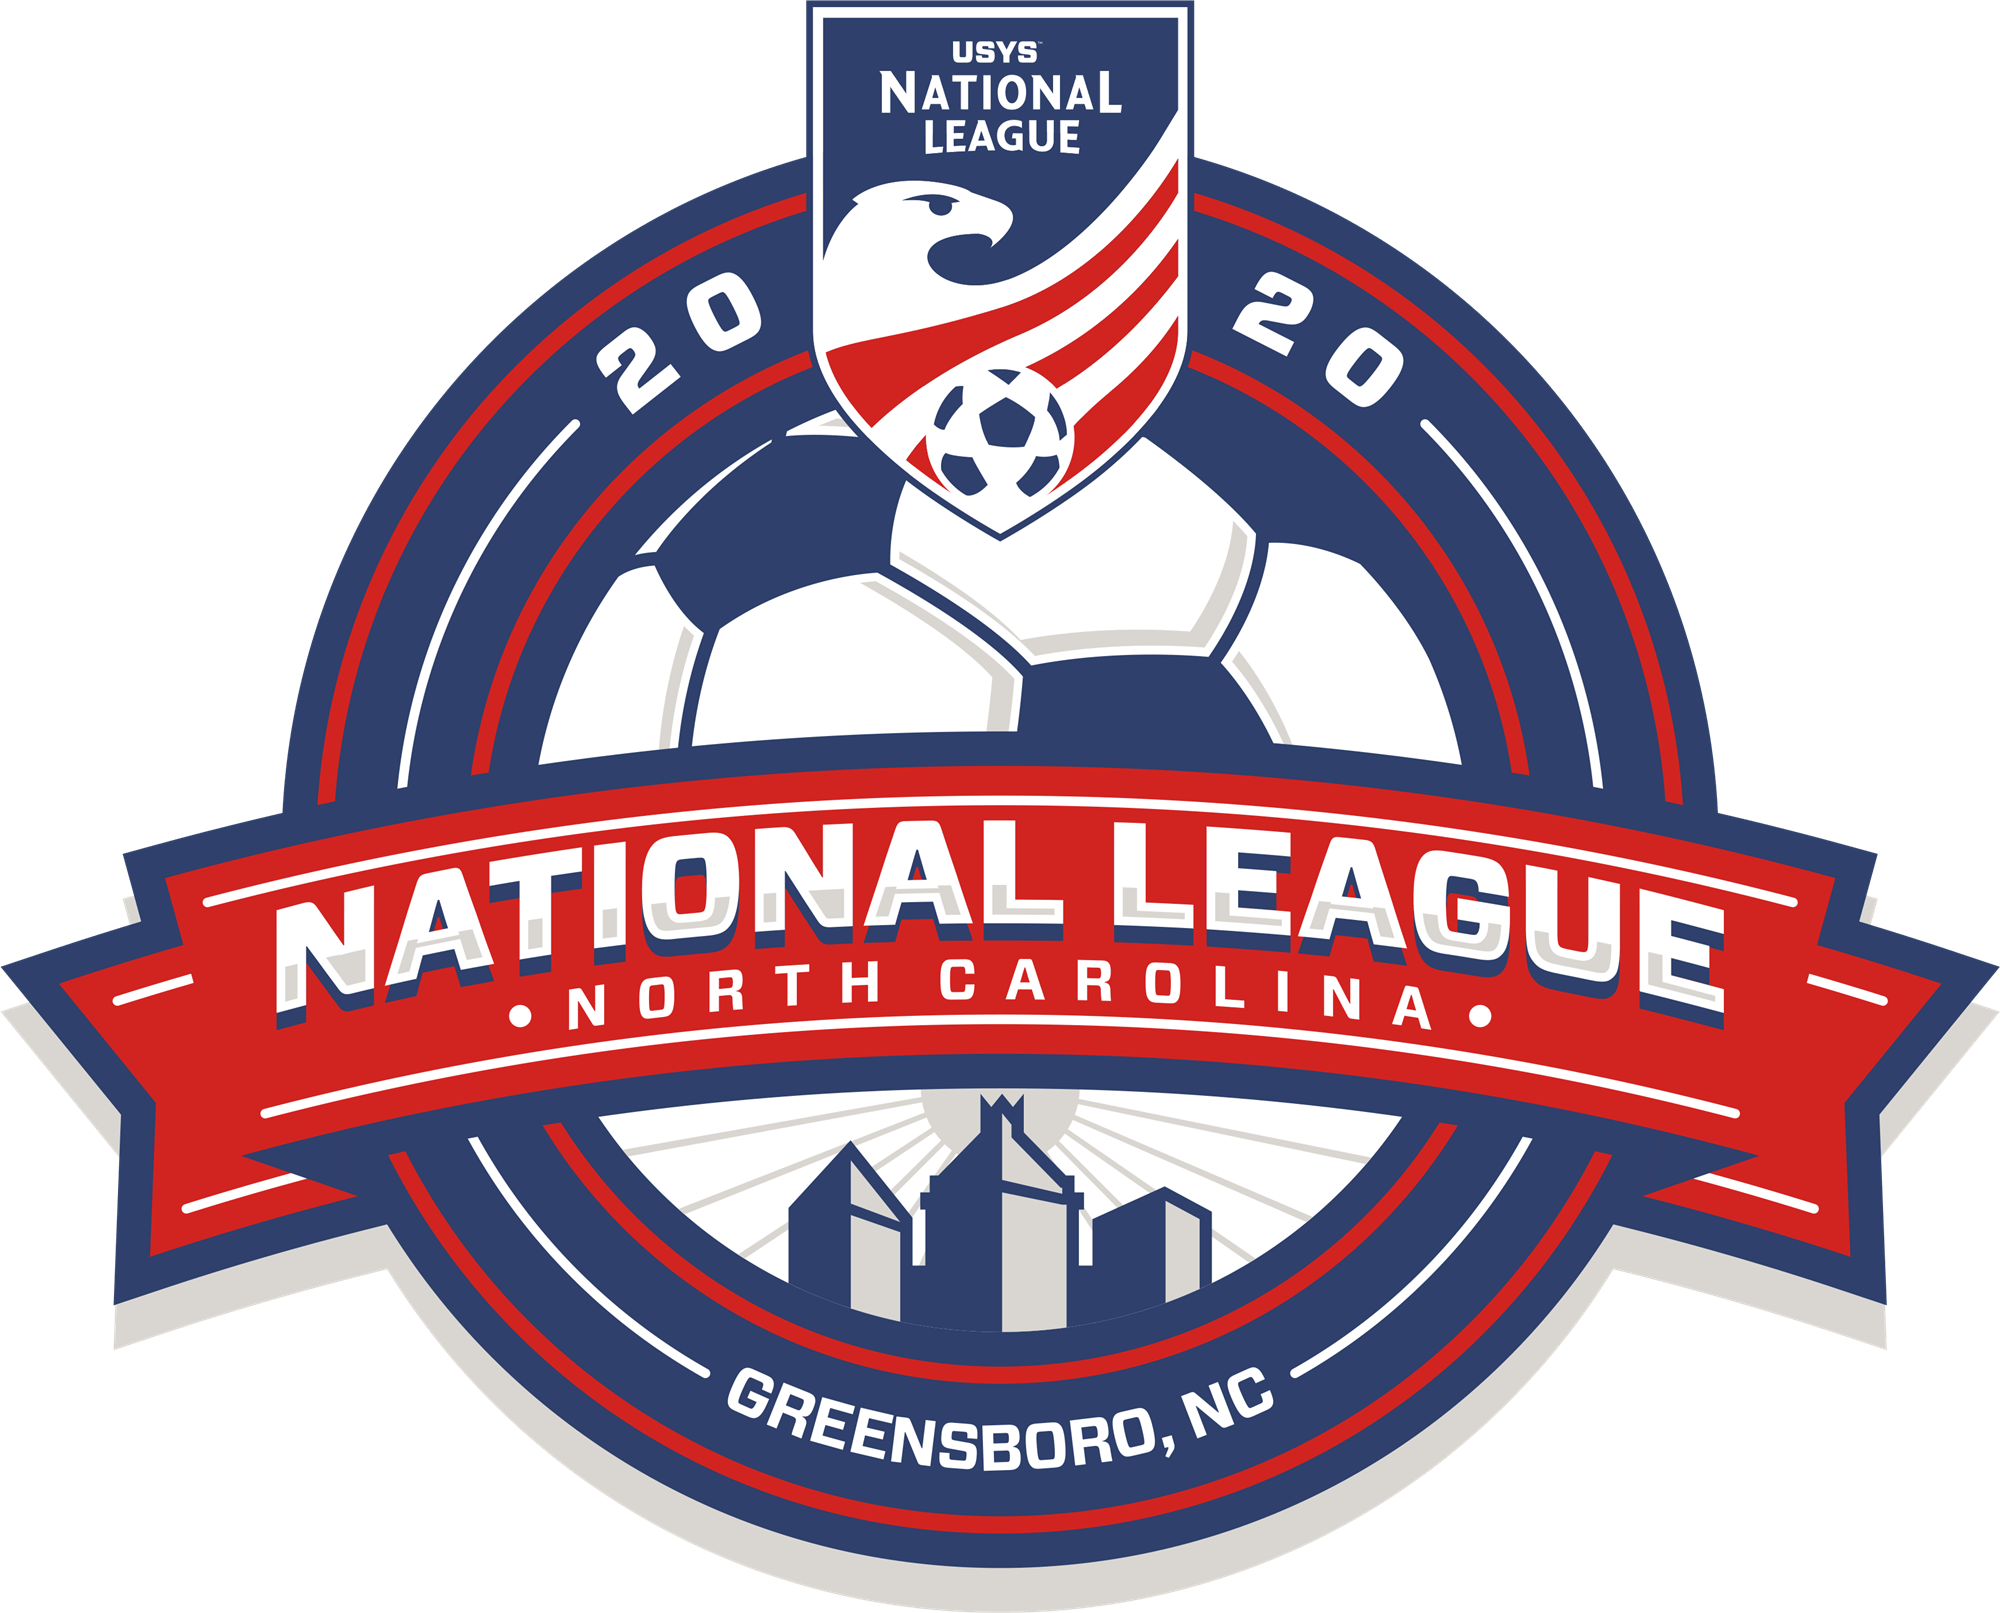 2020-USYS-NationalLeague-NC-white